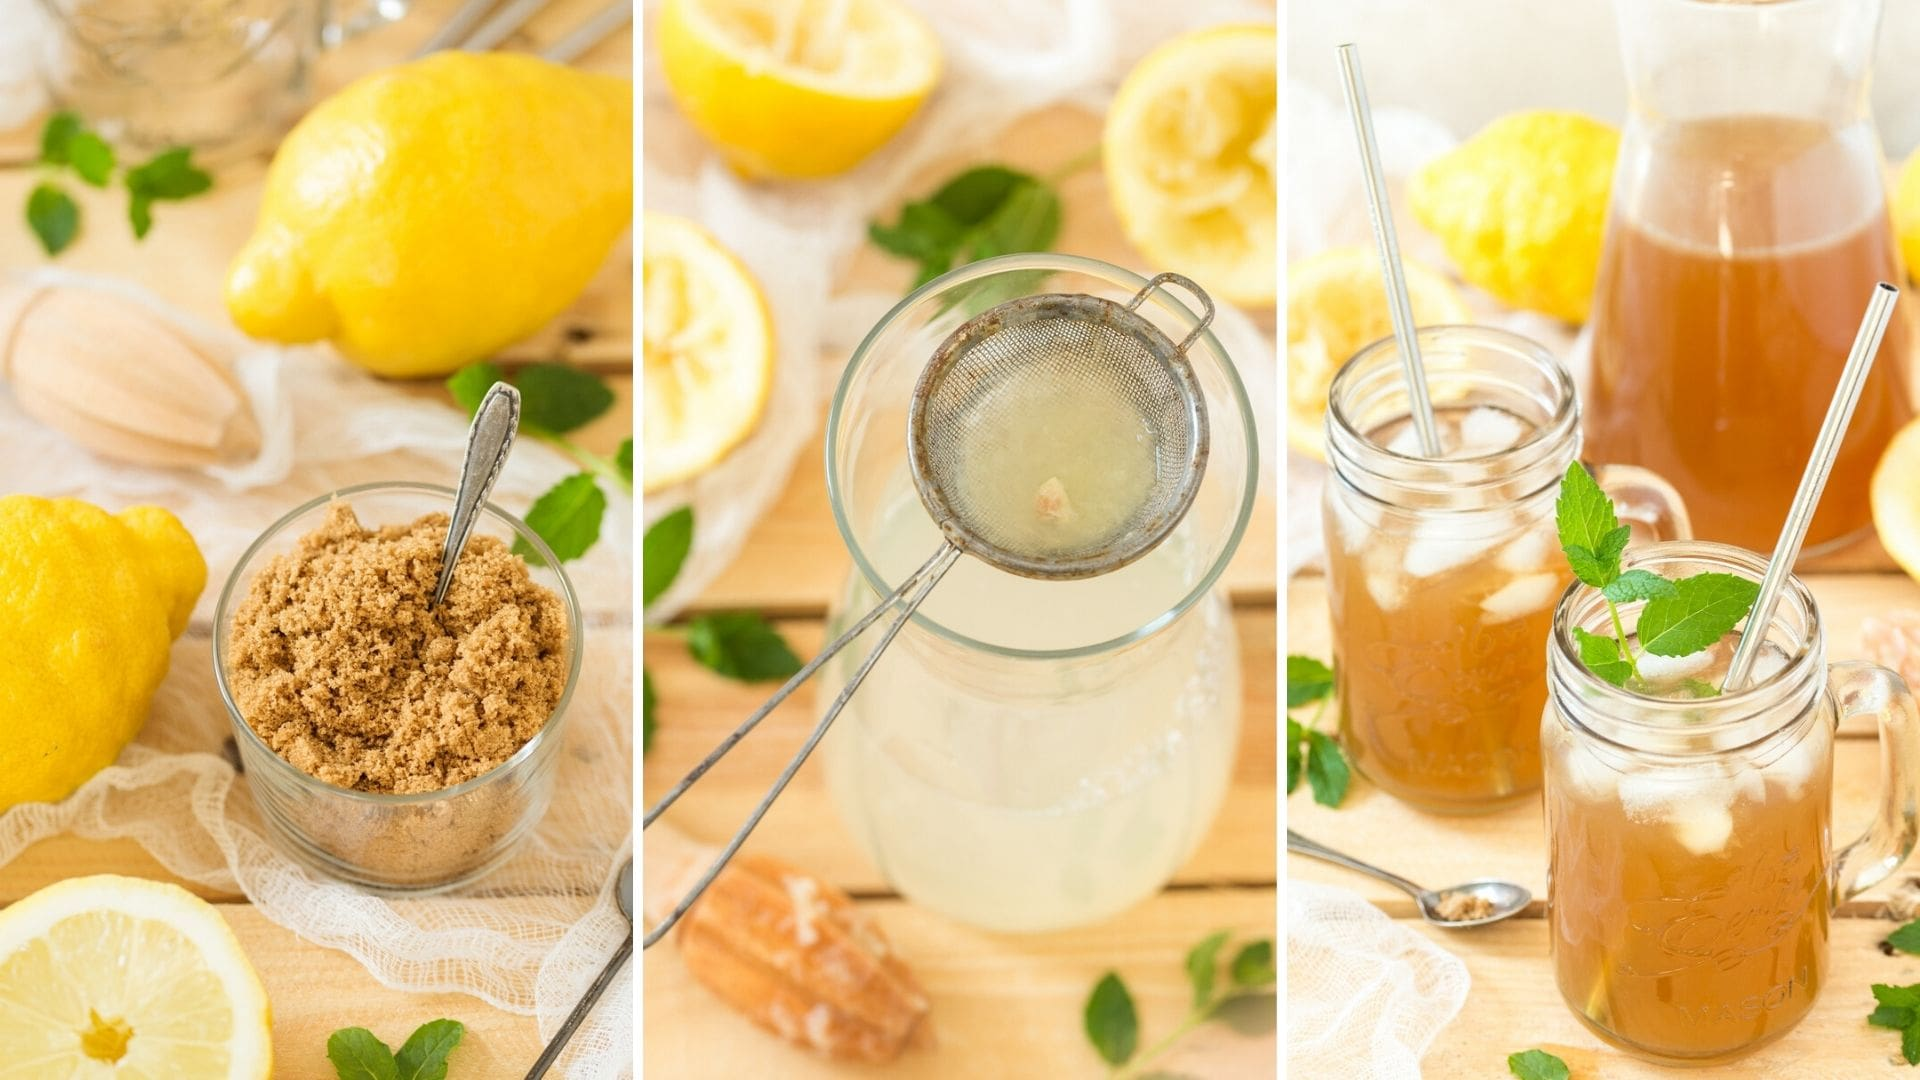 Brown lemonade recipe steps.